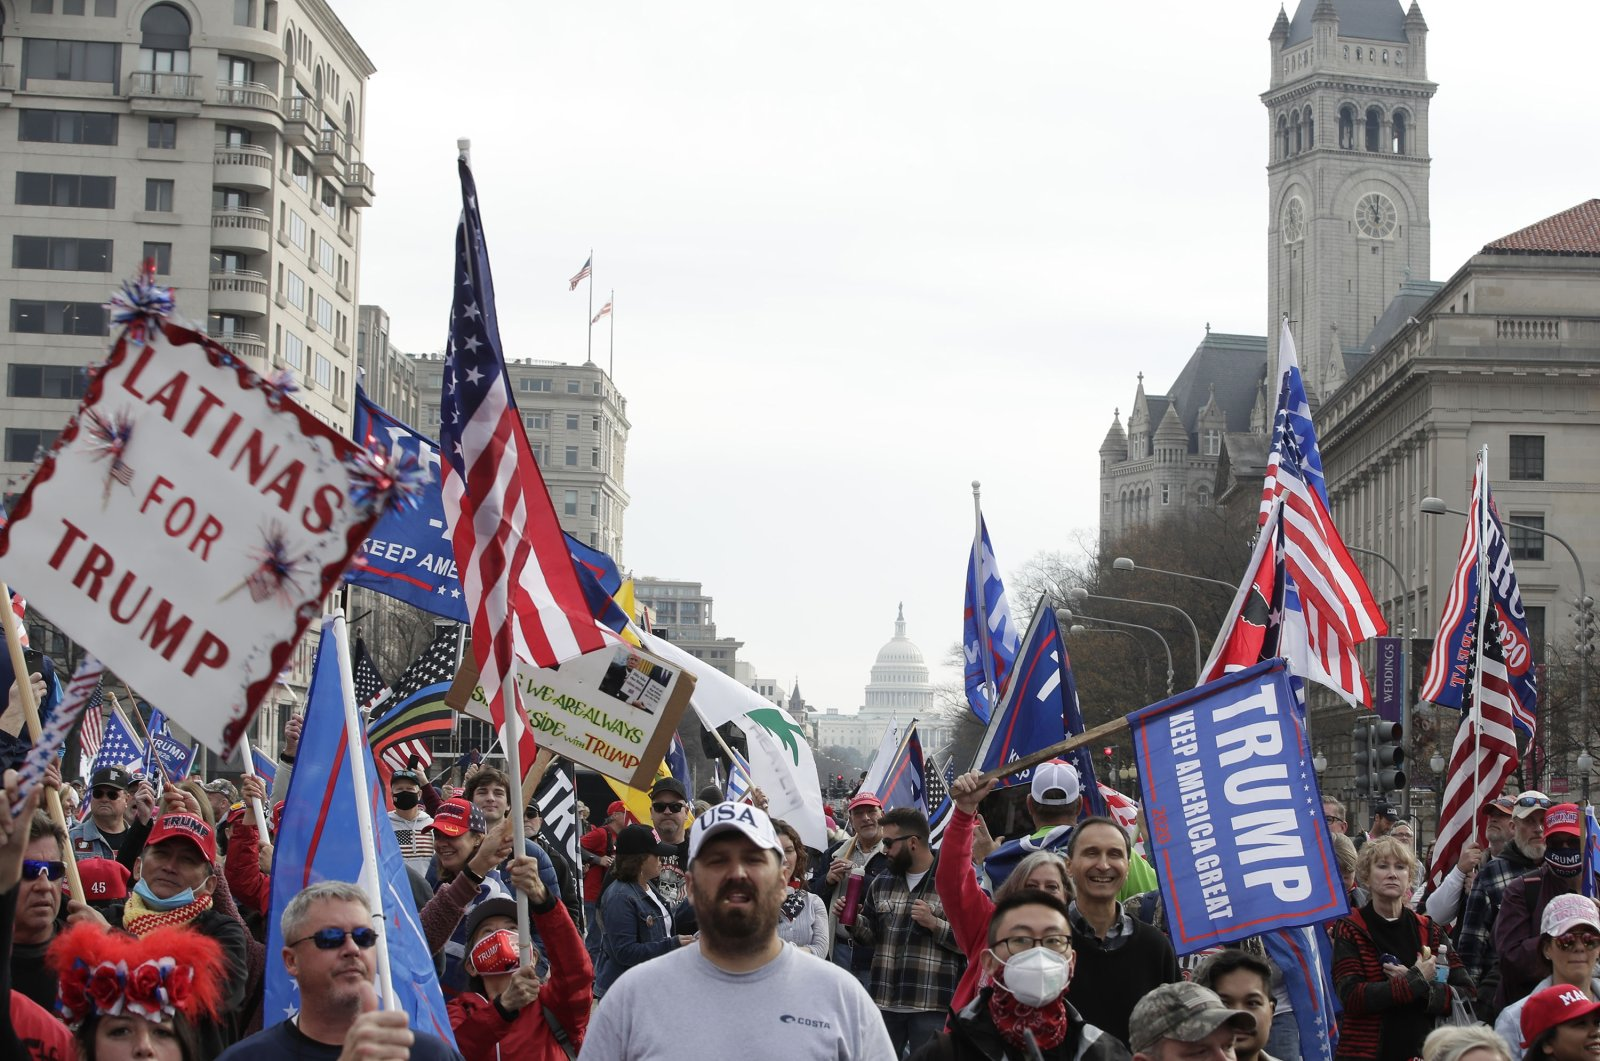 With the U.S. Capitol building in the background, supporters of President Donald Trump demonstrate during a rally at Freedom Plaza in Washington, D.C., Dec. 12, 2020. (AP Photo)